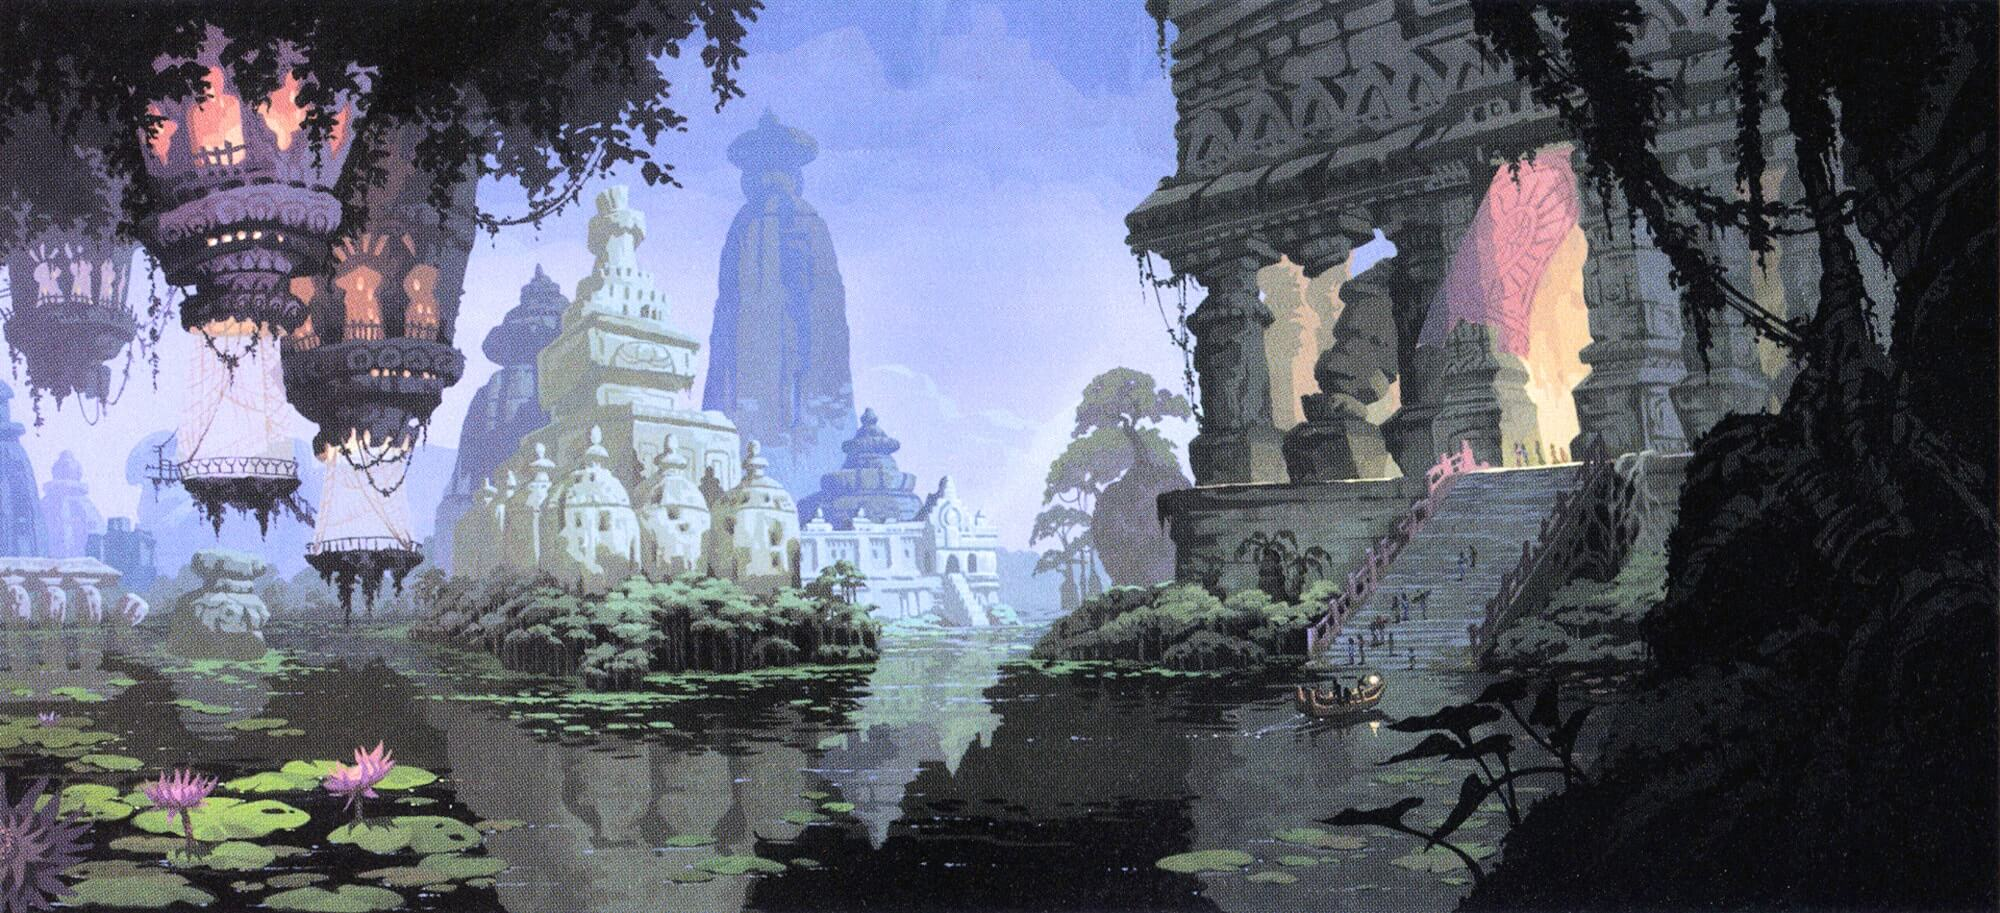 The Ancients: Tips On Mythic Worldbuilding For Past Ages20 Min Read